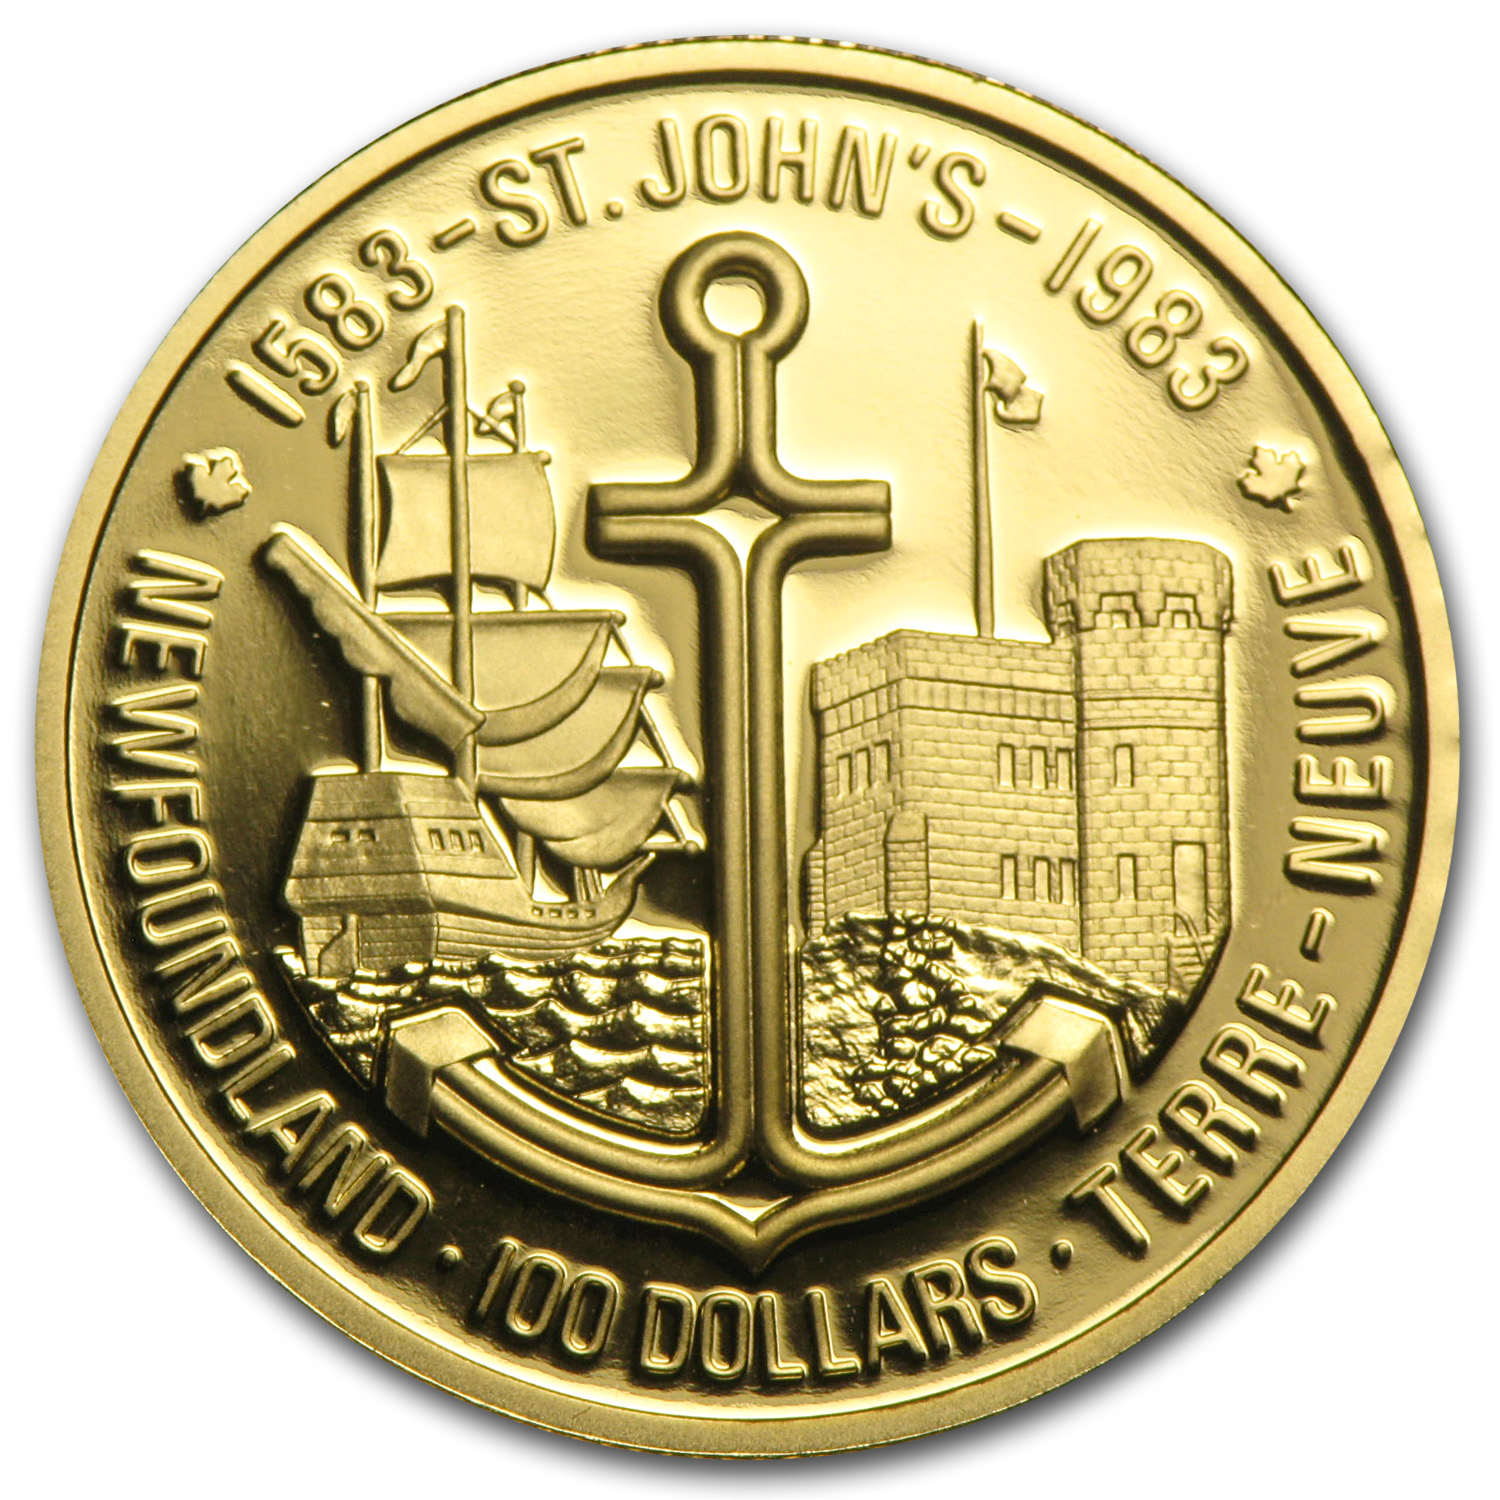 1983 Canada 1/2 oz Proof Gold $100 St. John's Newfoundland